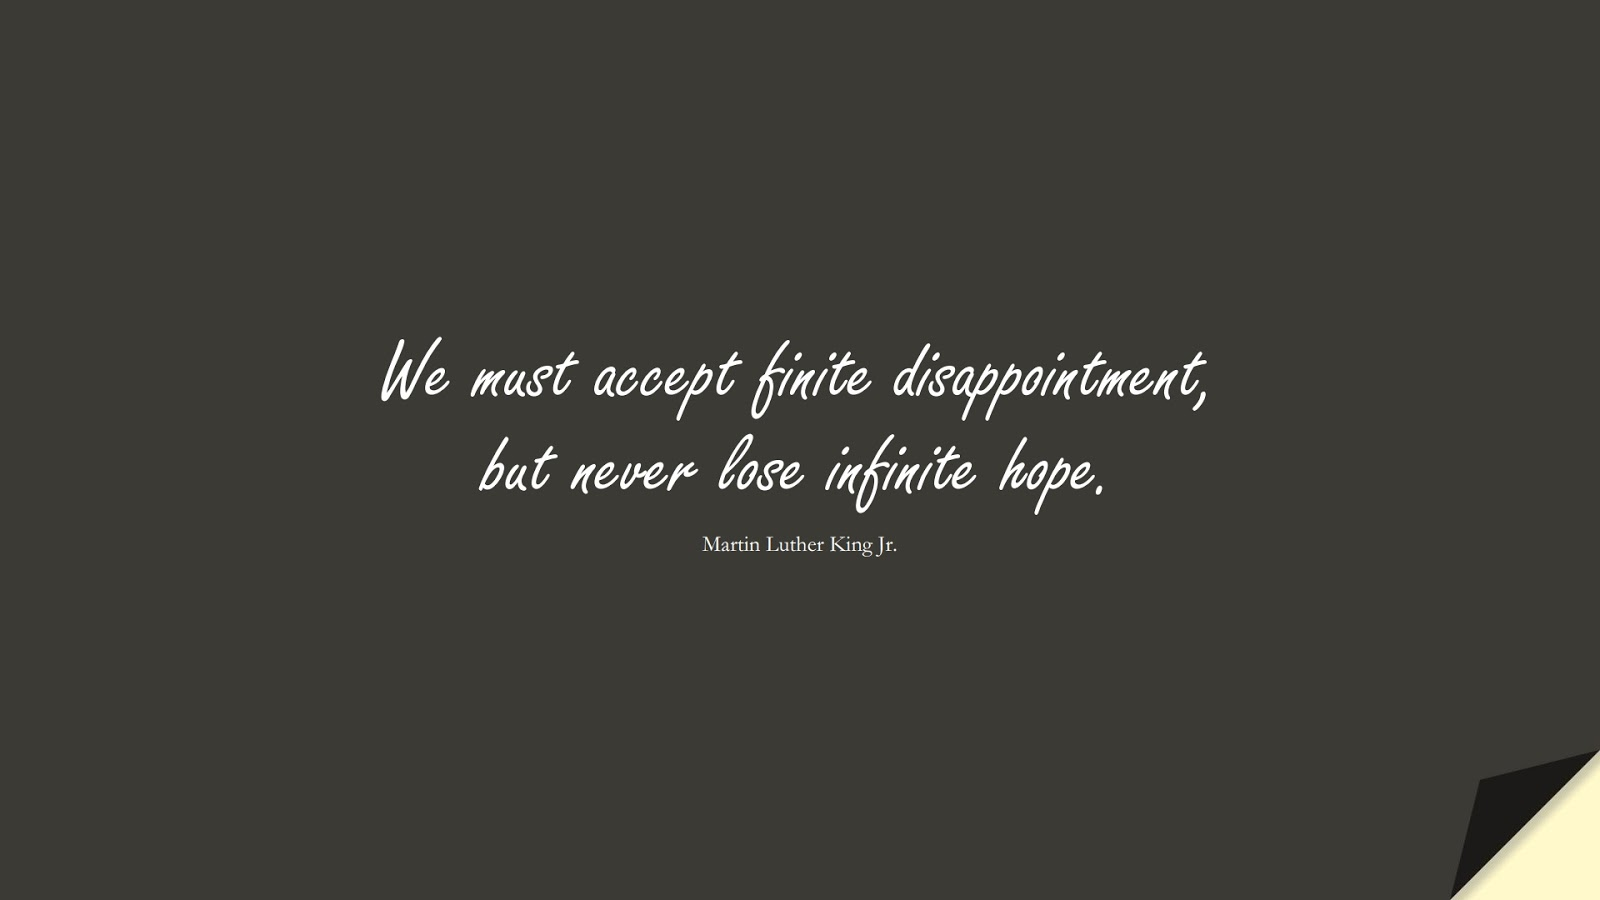 We must accept finite disappointment, but never lose infinite hope. (Martin Luther King Jr.);  #MartinLutherKingJrQuotes